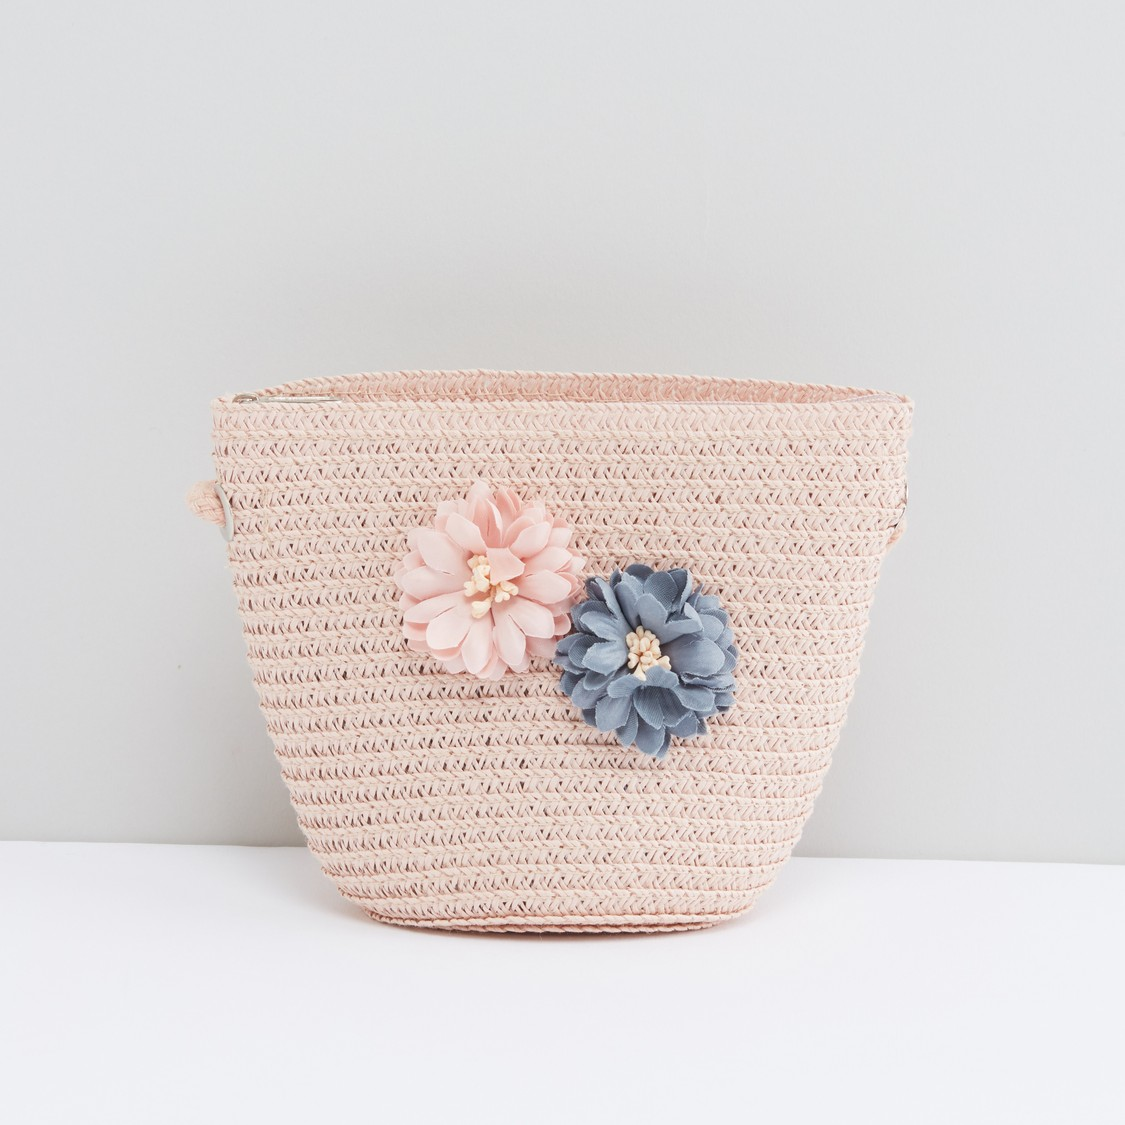 Textured Crossbody Bag with Flower Applique